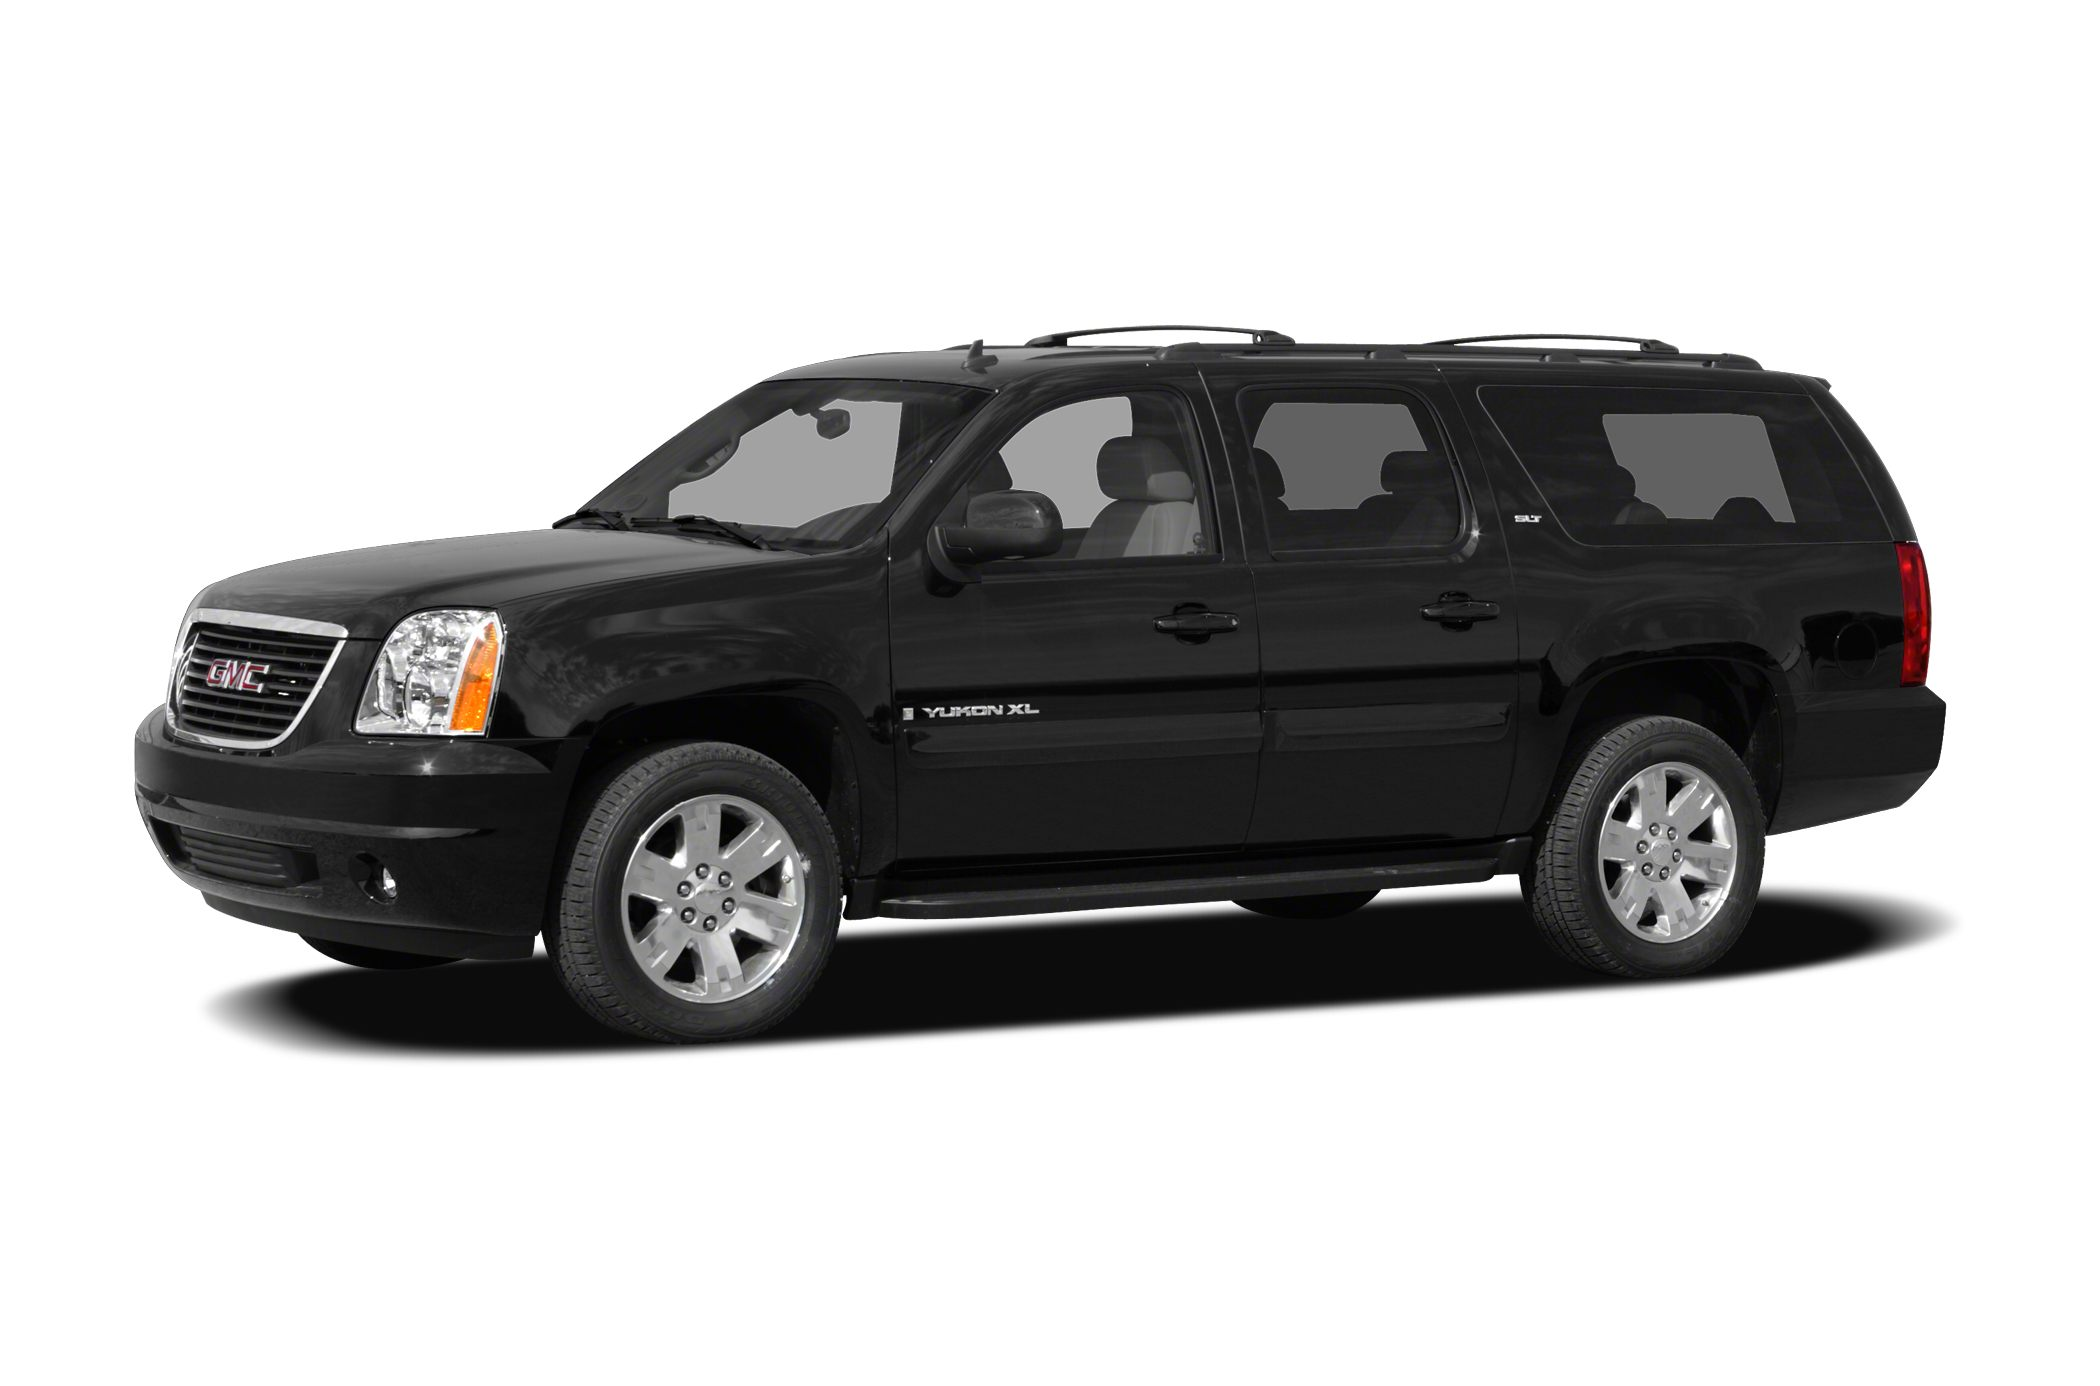 2011 GMC Yukon XL 1500 SLT SUV for sale in Many for $28,673 with 72,680 miles.